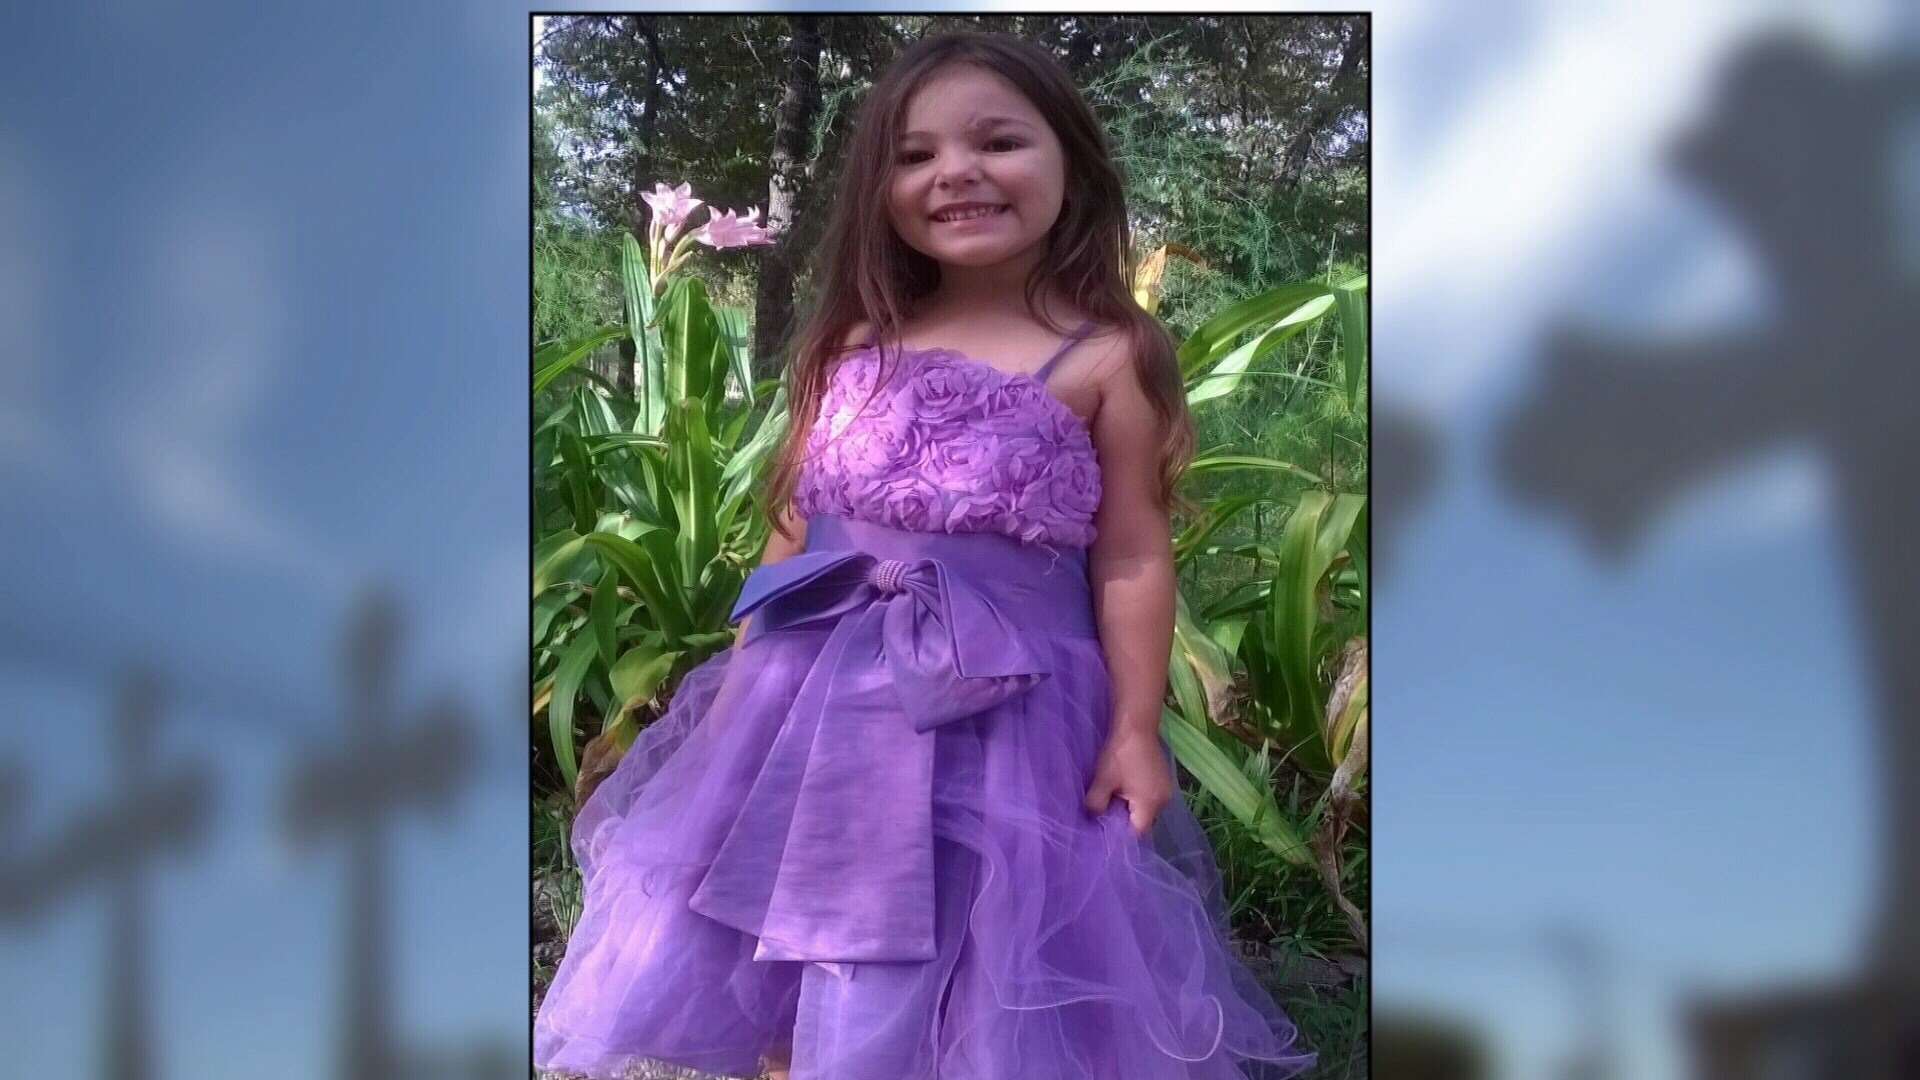 Six-year-old Zoe's pelvis was shattered by bullets. She has already had three operations since the shooting and faces more.